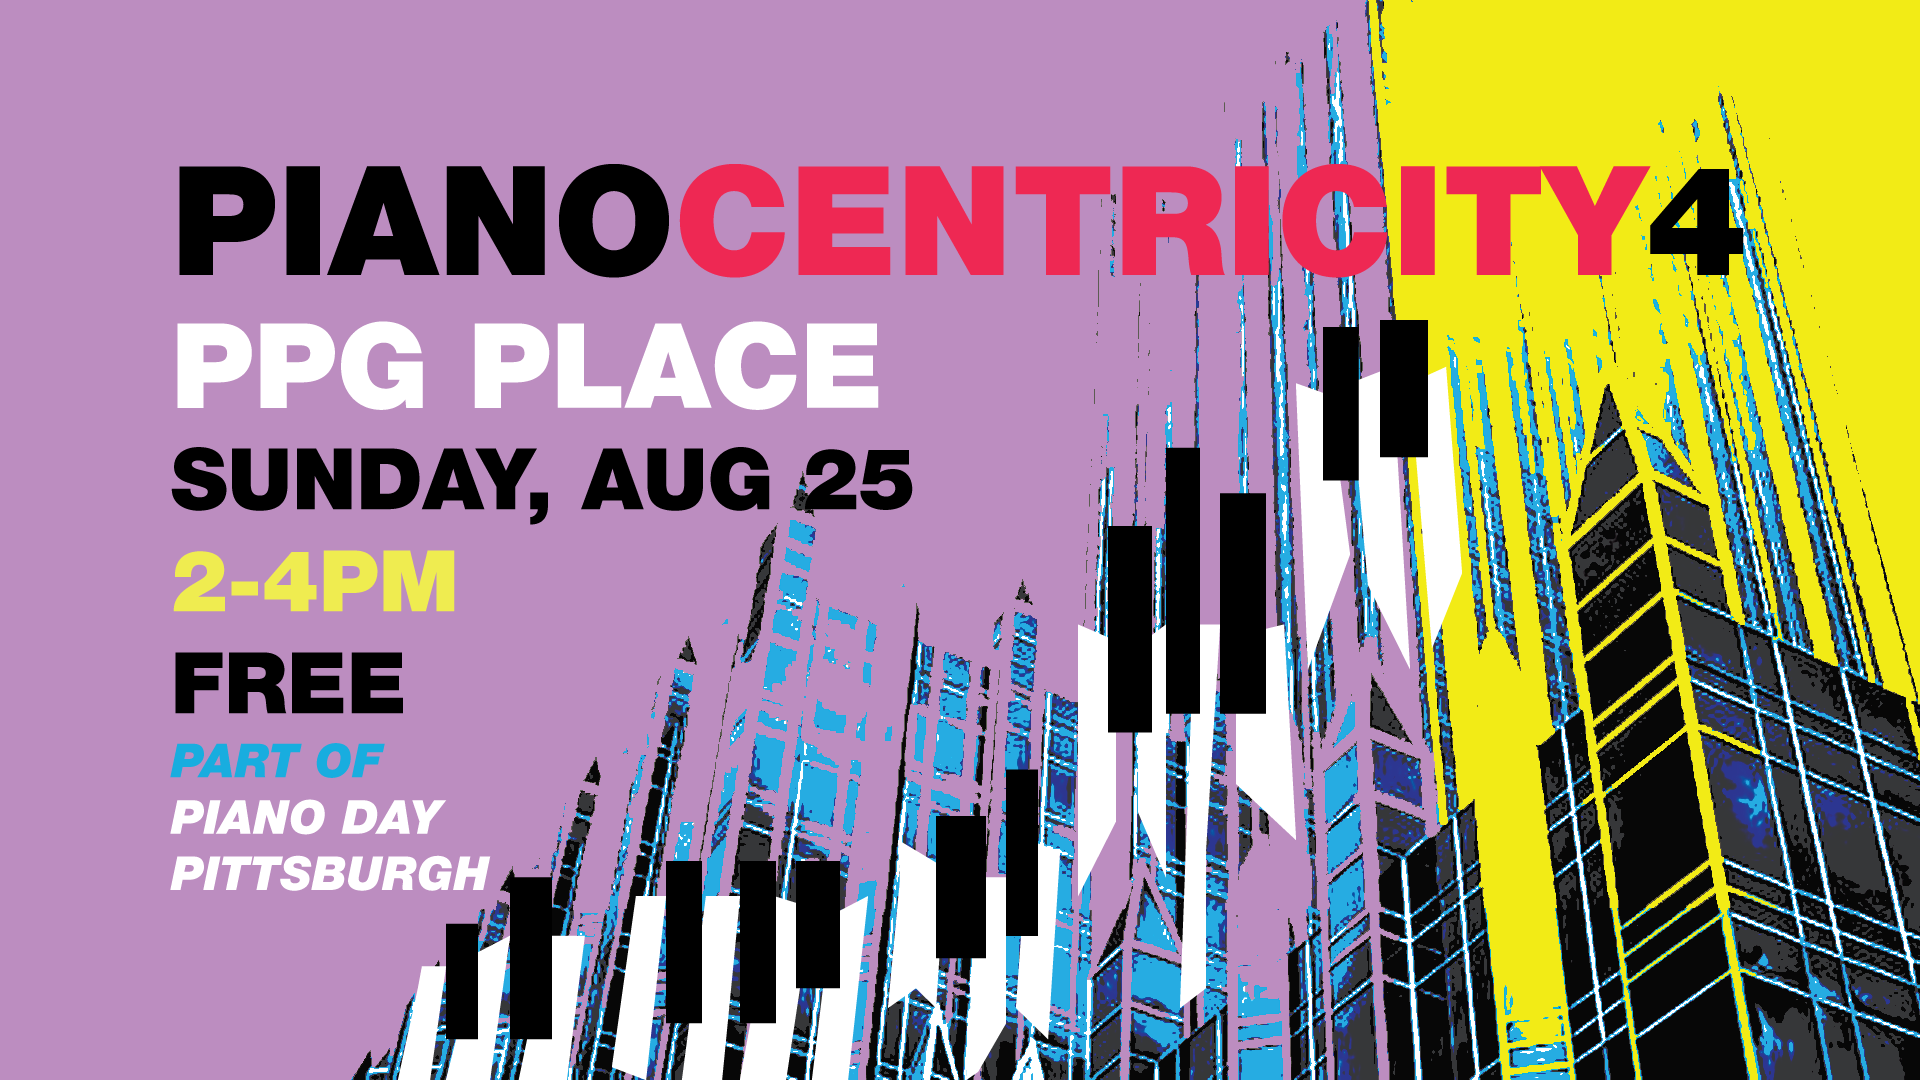 pianocentricity4.png_PROMO